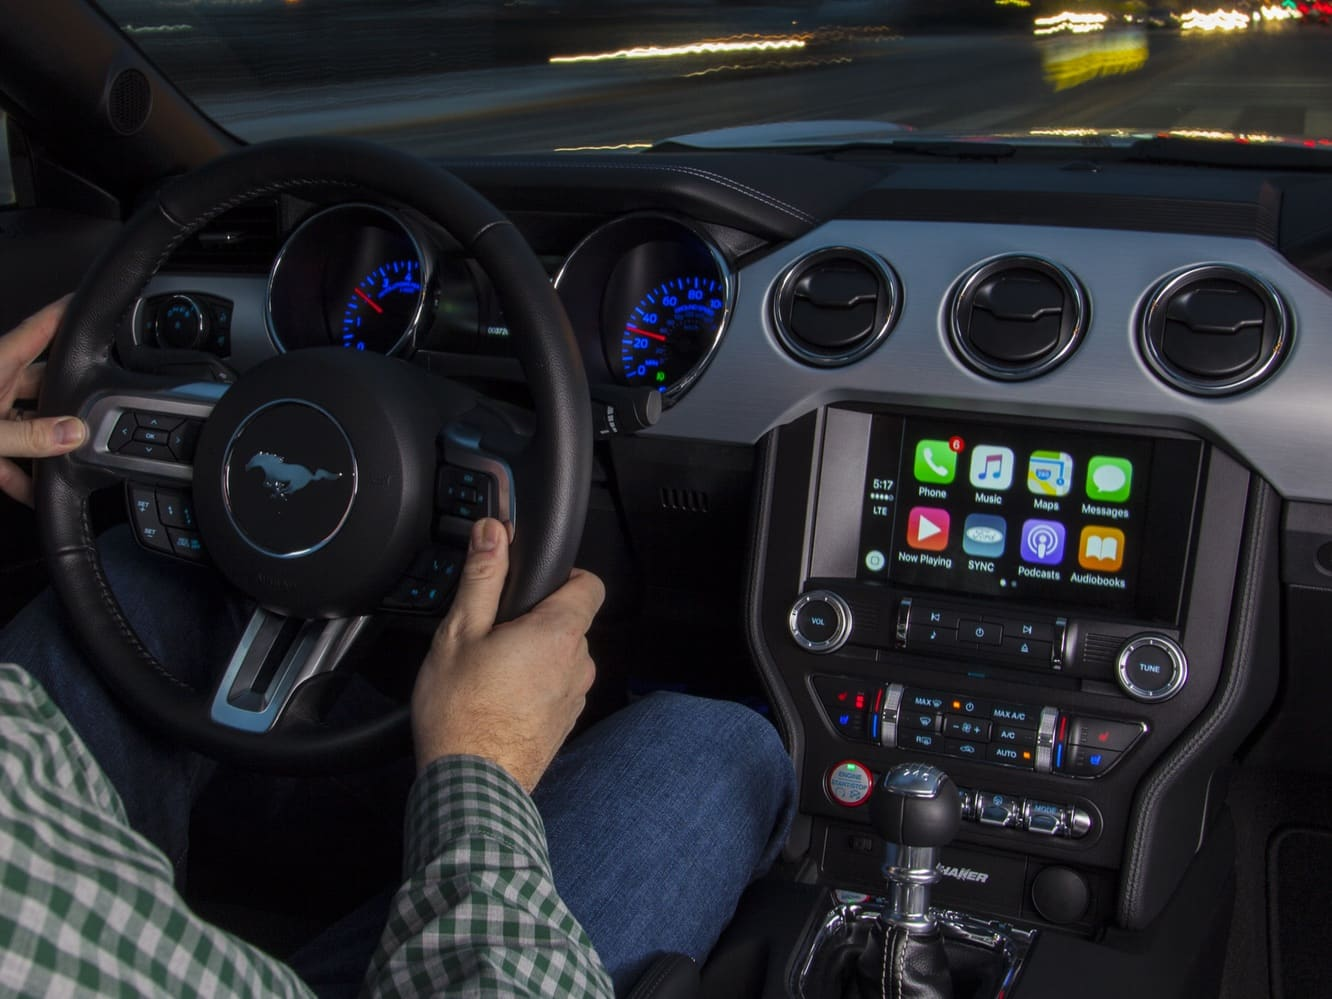 CarPlay arriving in new Ford models this year